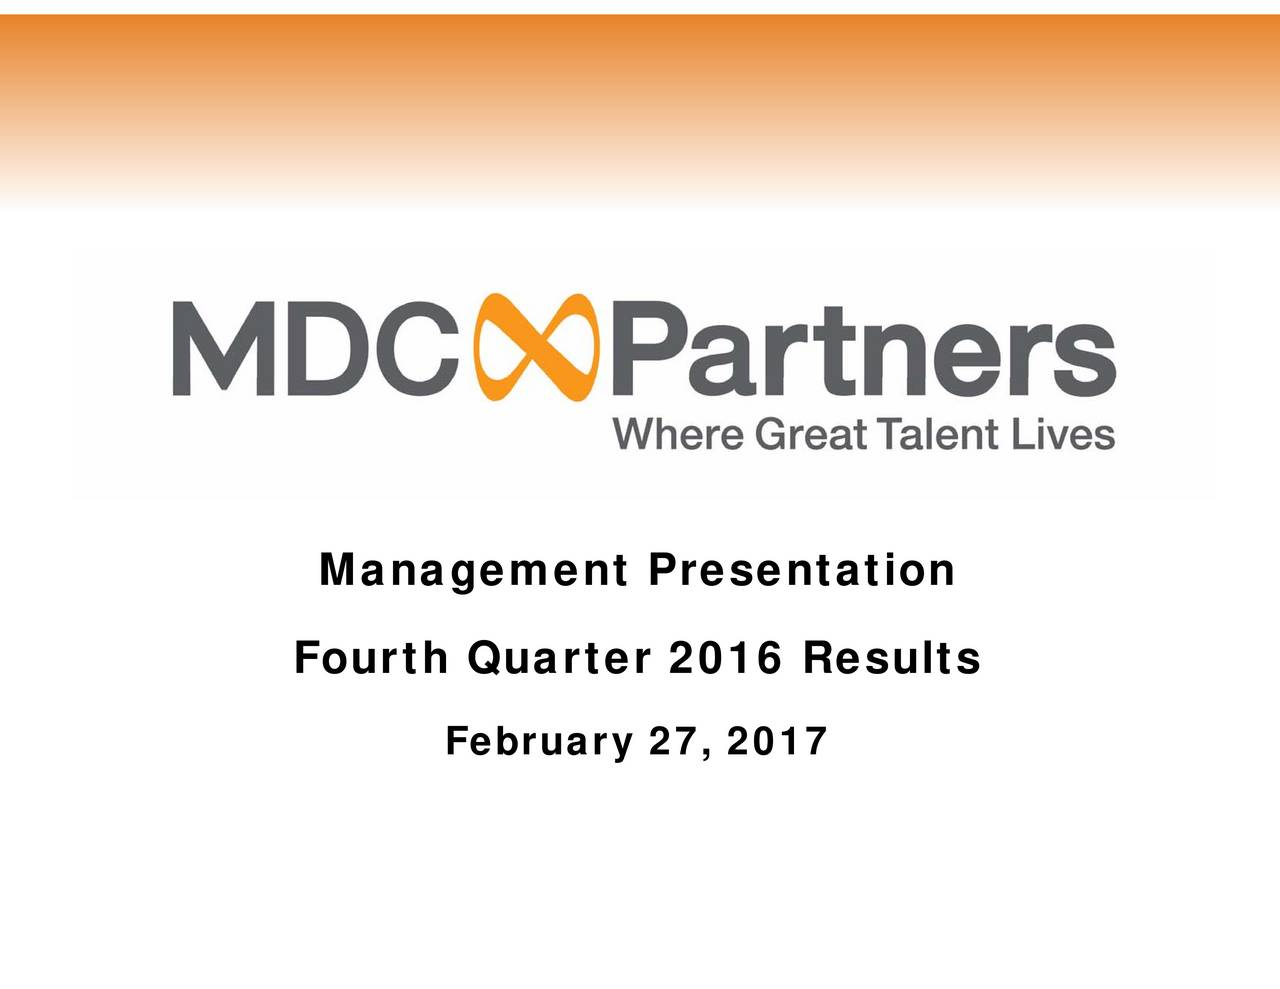 ManaFourth Quarter 2016 Results